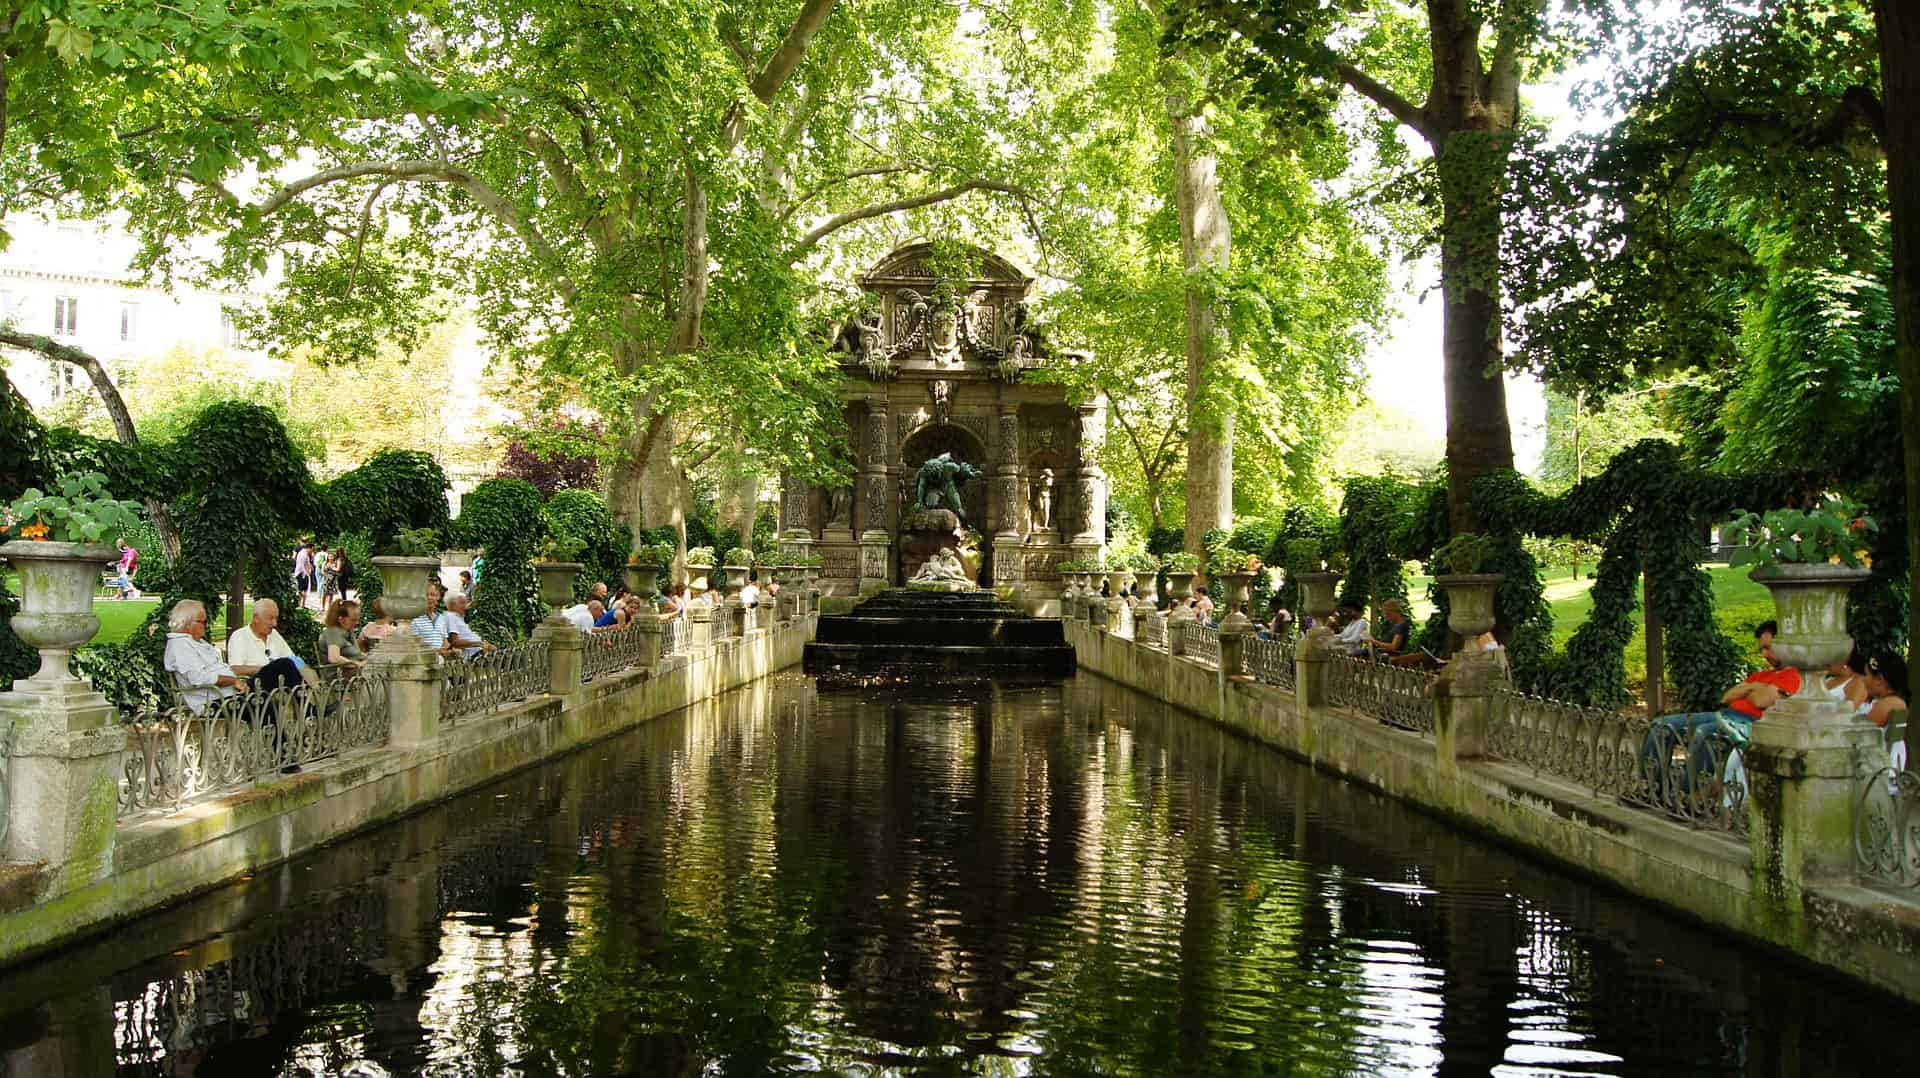 hidden treasures Paris: luxembourg garden paris in the center of Paris - secret tip: get your lunch in a nearby bakery. Read more about Paris hidden gems and Paris secret tips on our Blog